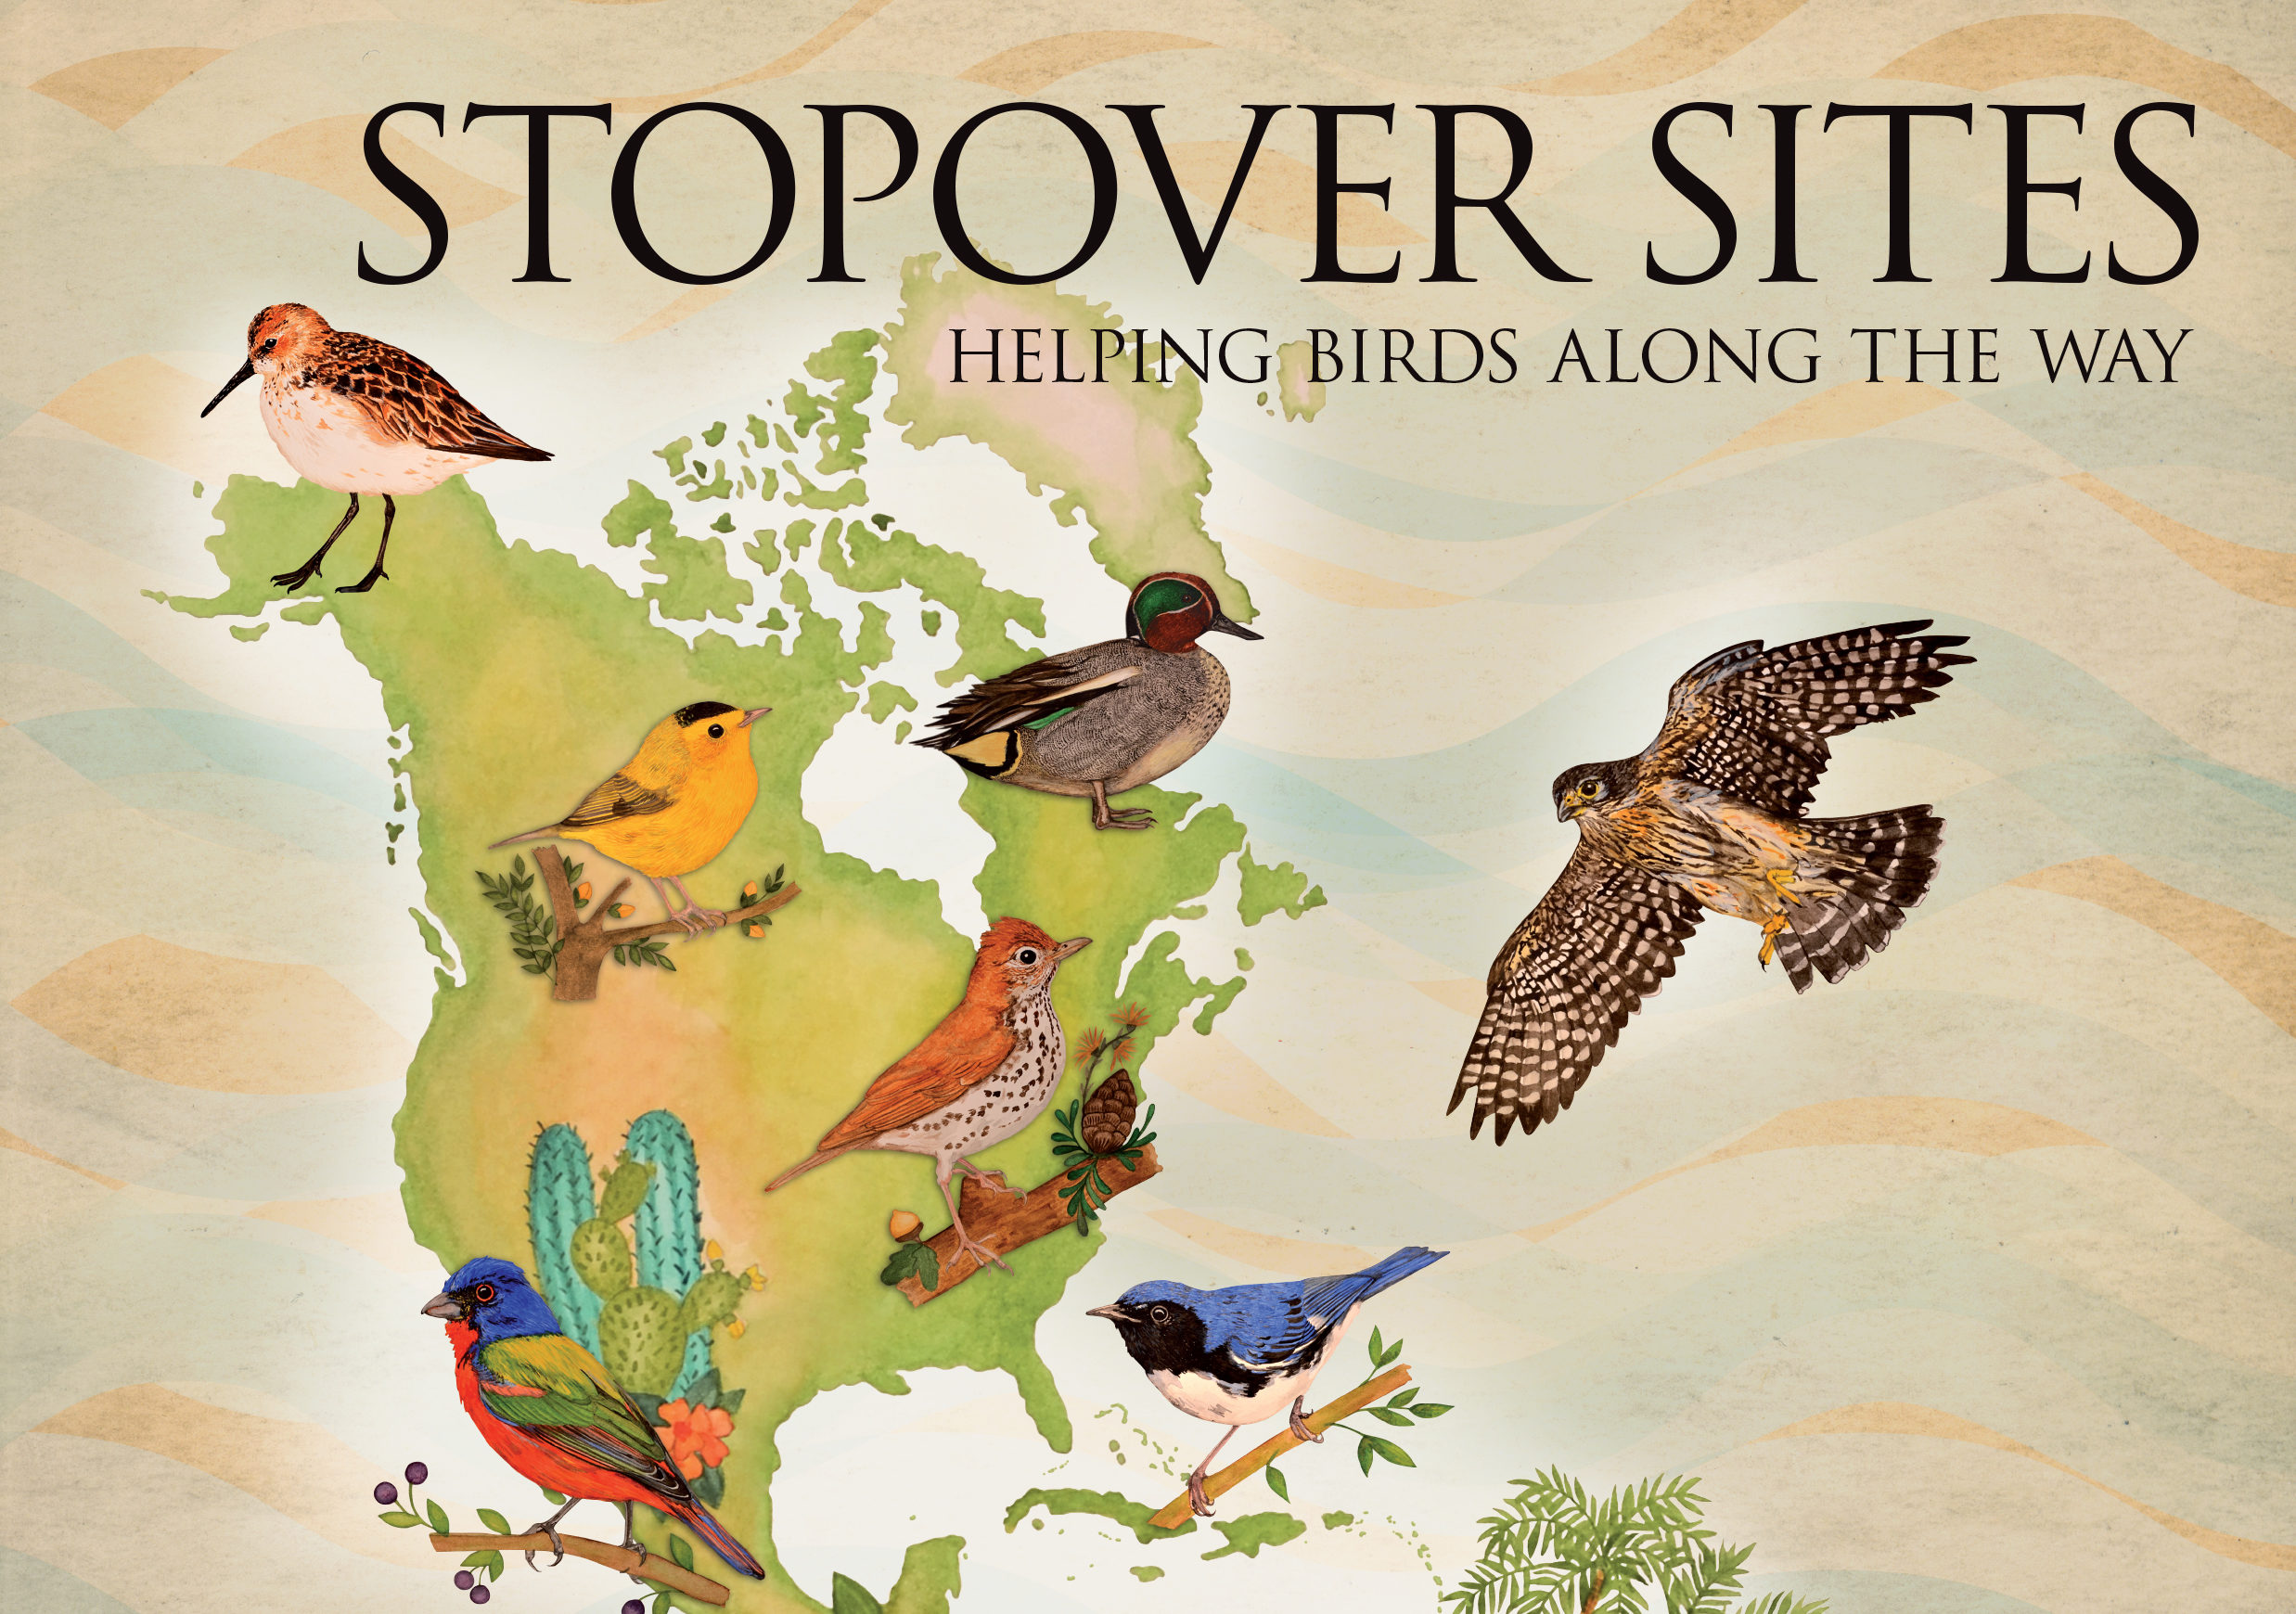 News Release: International Migratory Bird Day to Educate Participants on the Importance of Healthy Stopover Sites